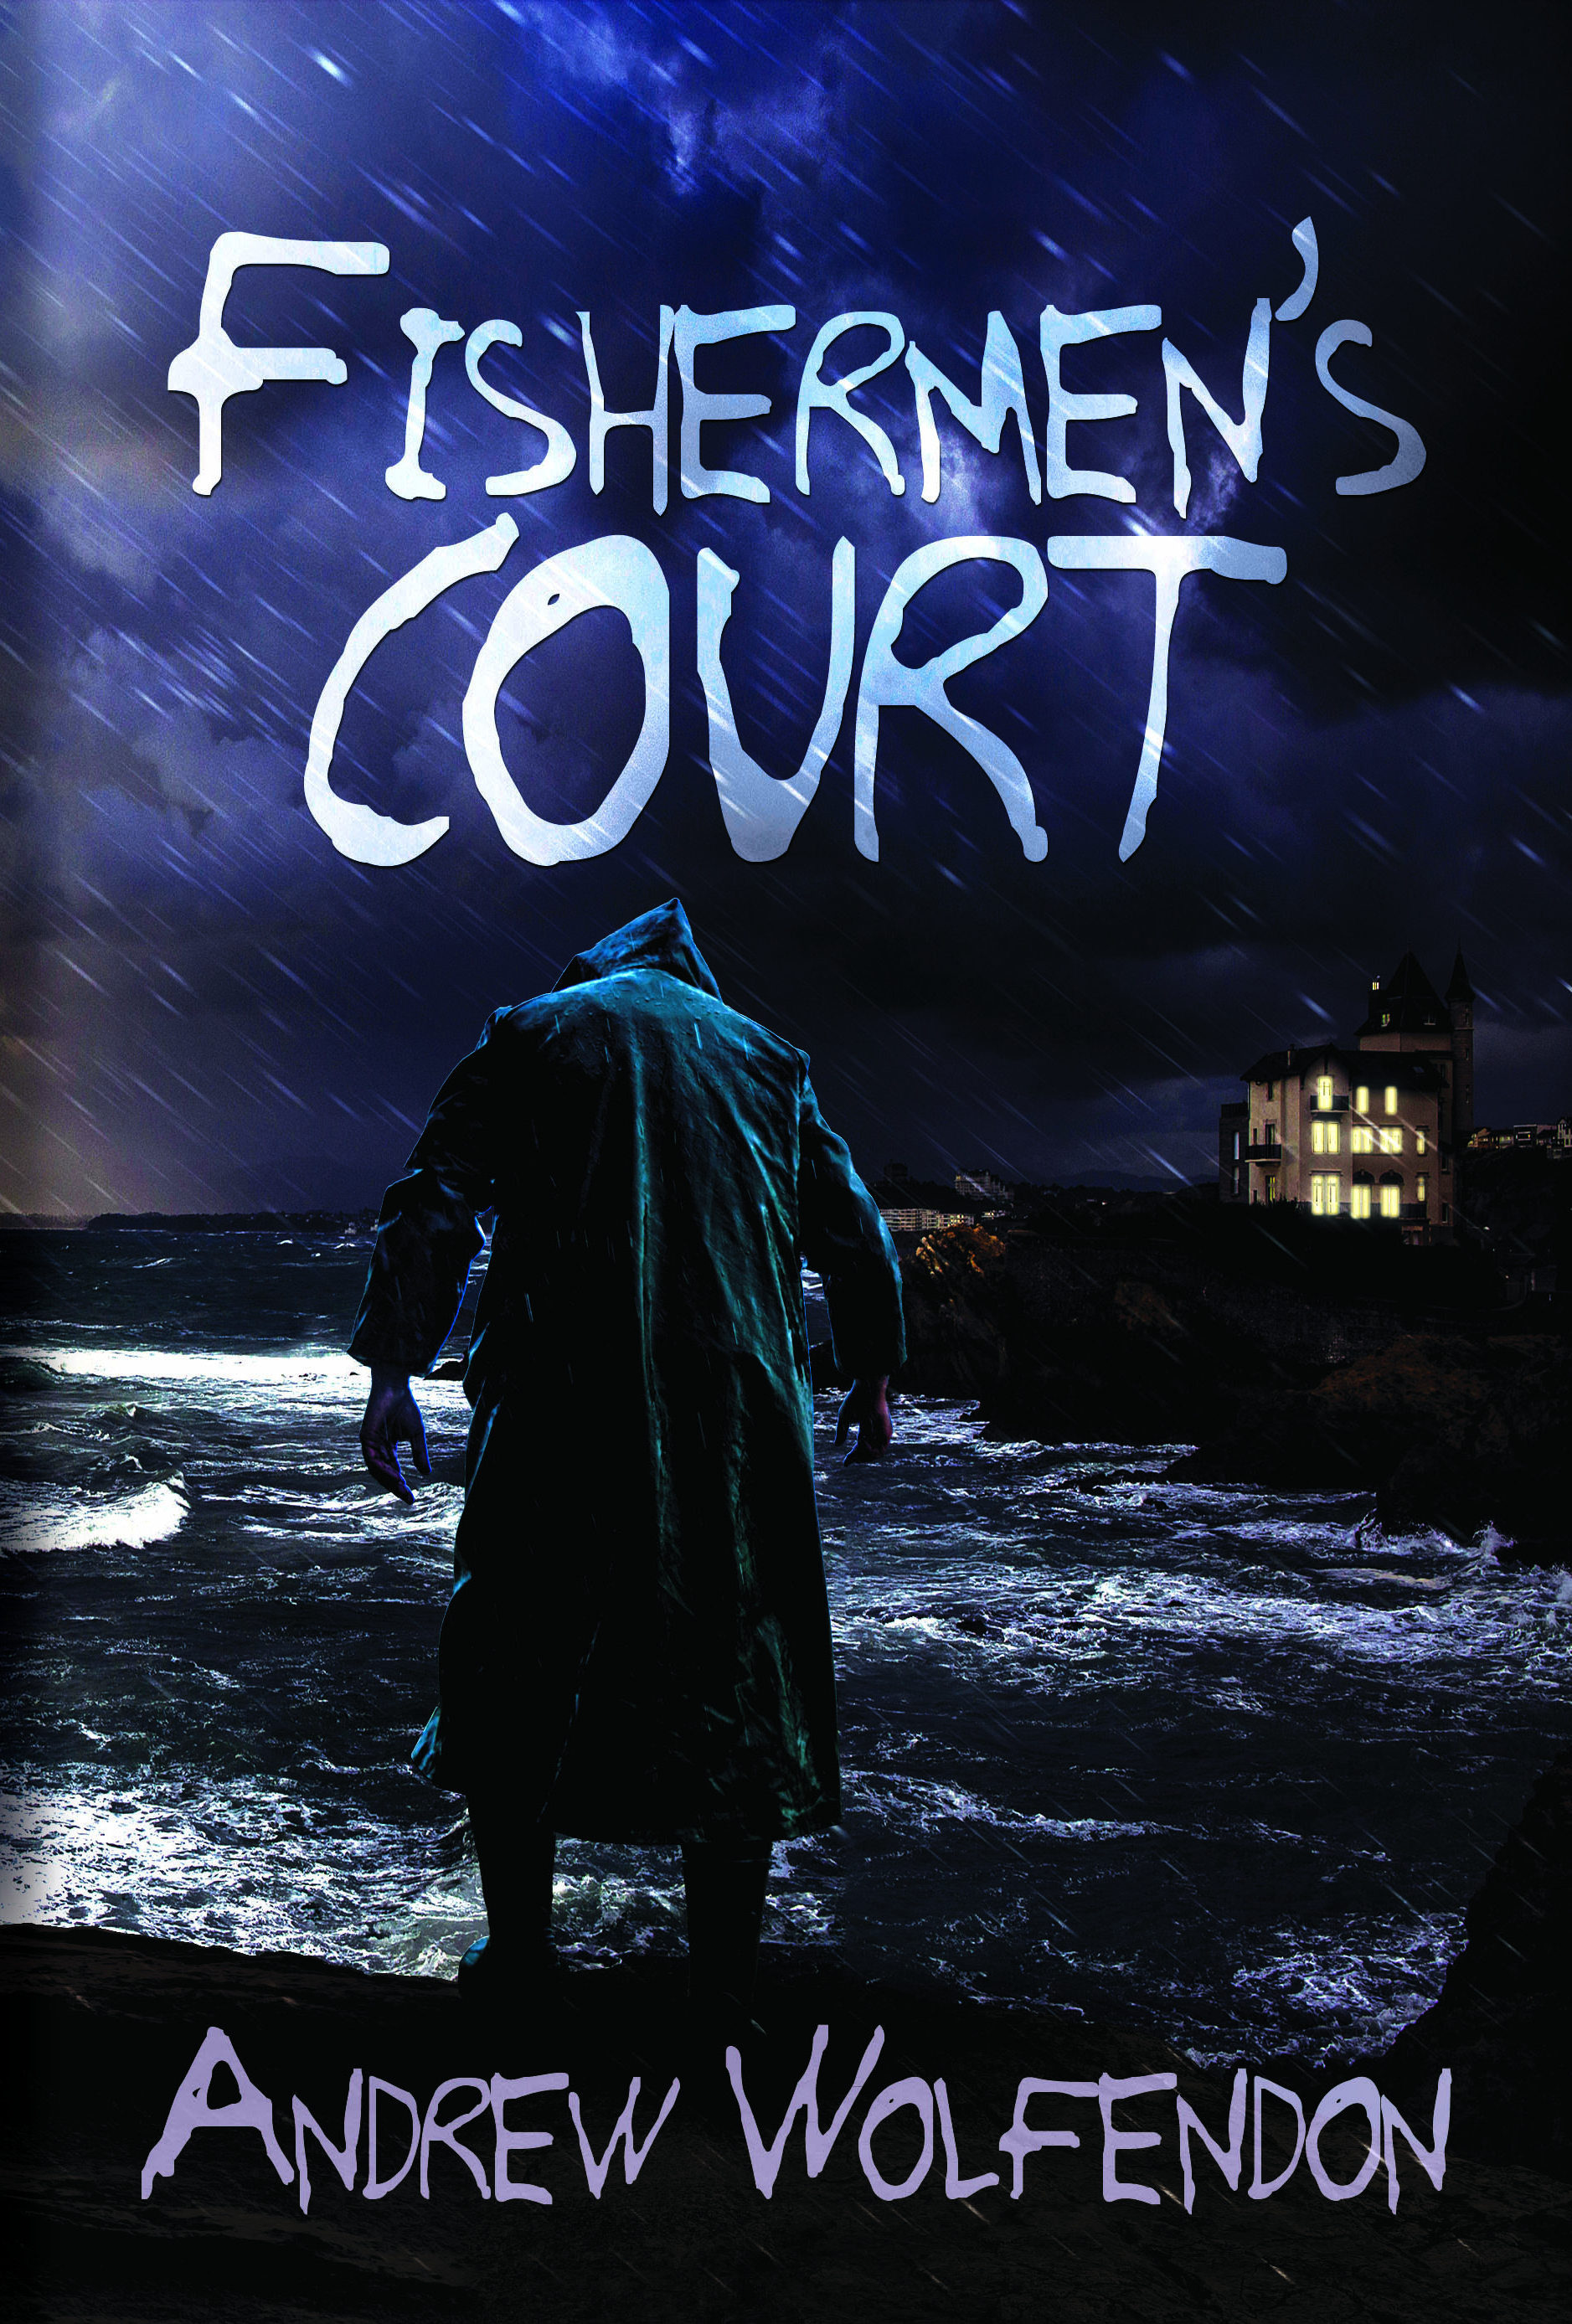 Fishermen's Court cropped cover2.jpg